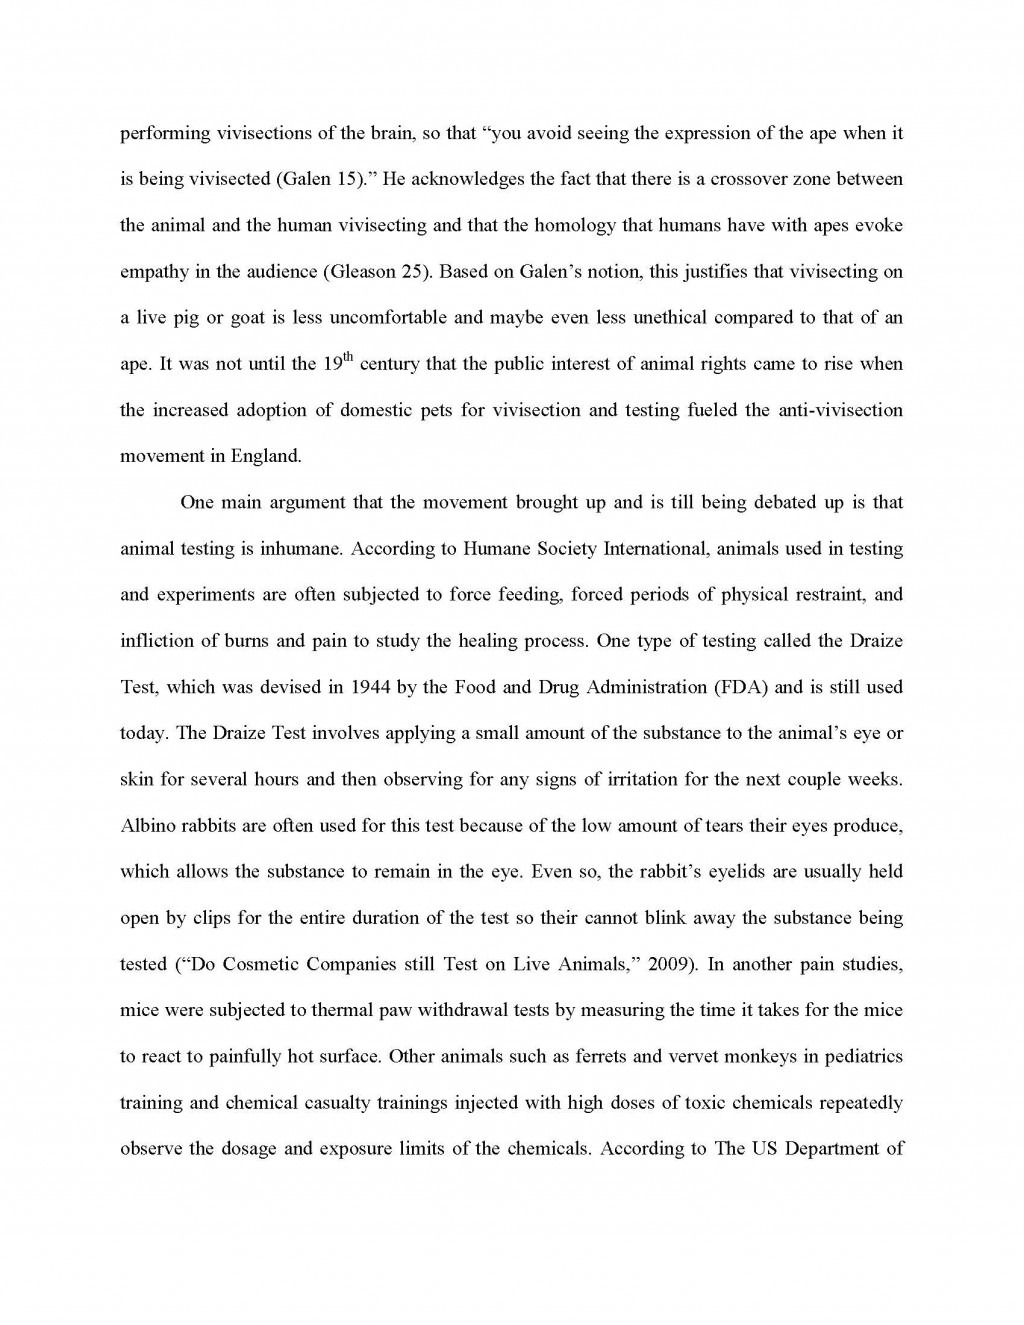 008 Cruelty To Animals Essay Example Animal Testing Final Page 2 Wondrous In 100 Words Persuasive Towards Wikipedia Large